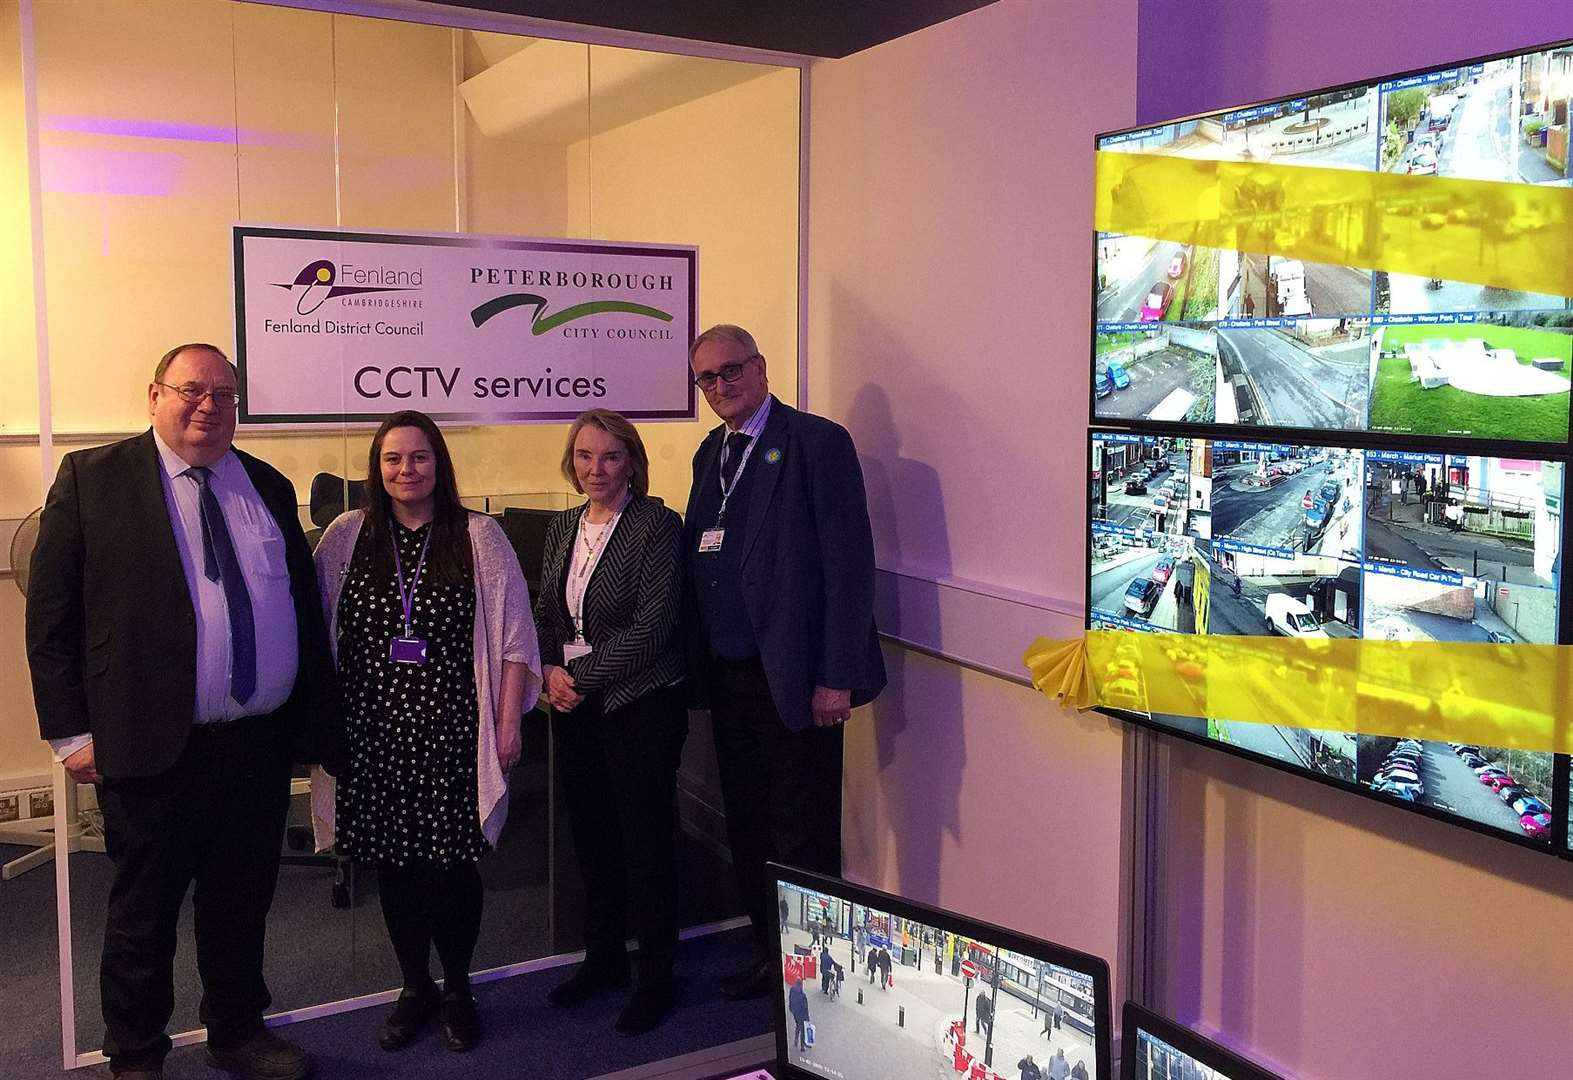 A new state-of-the-art CCTV control room which allows officers to monitor footage from across Peterborough and Fenland has been launched